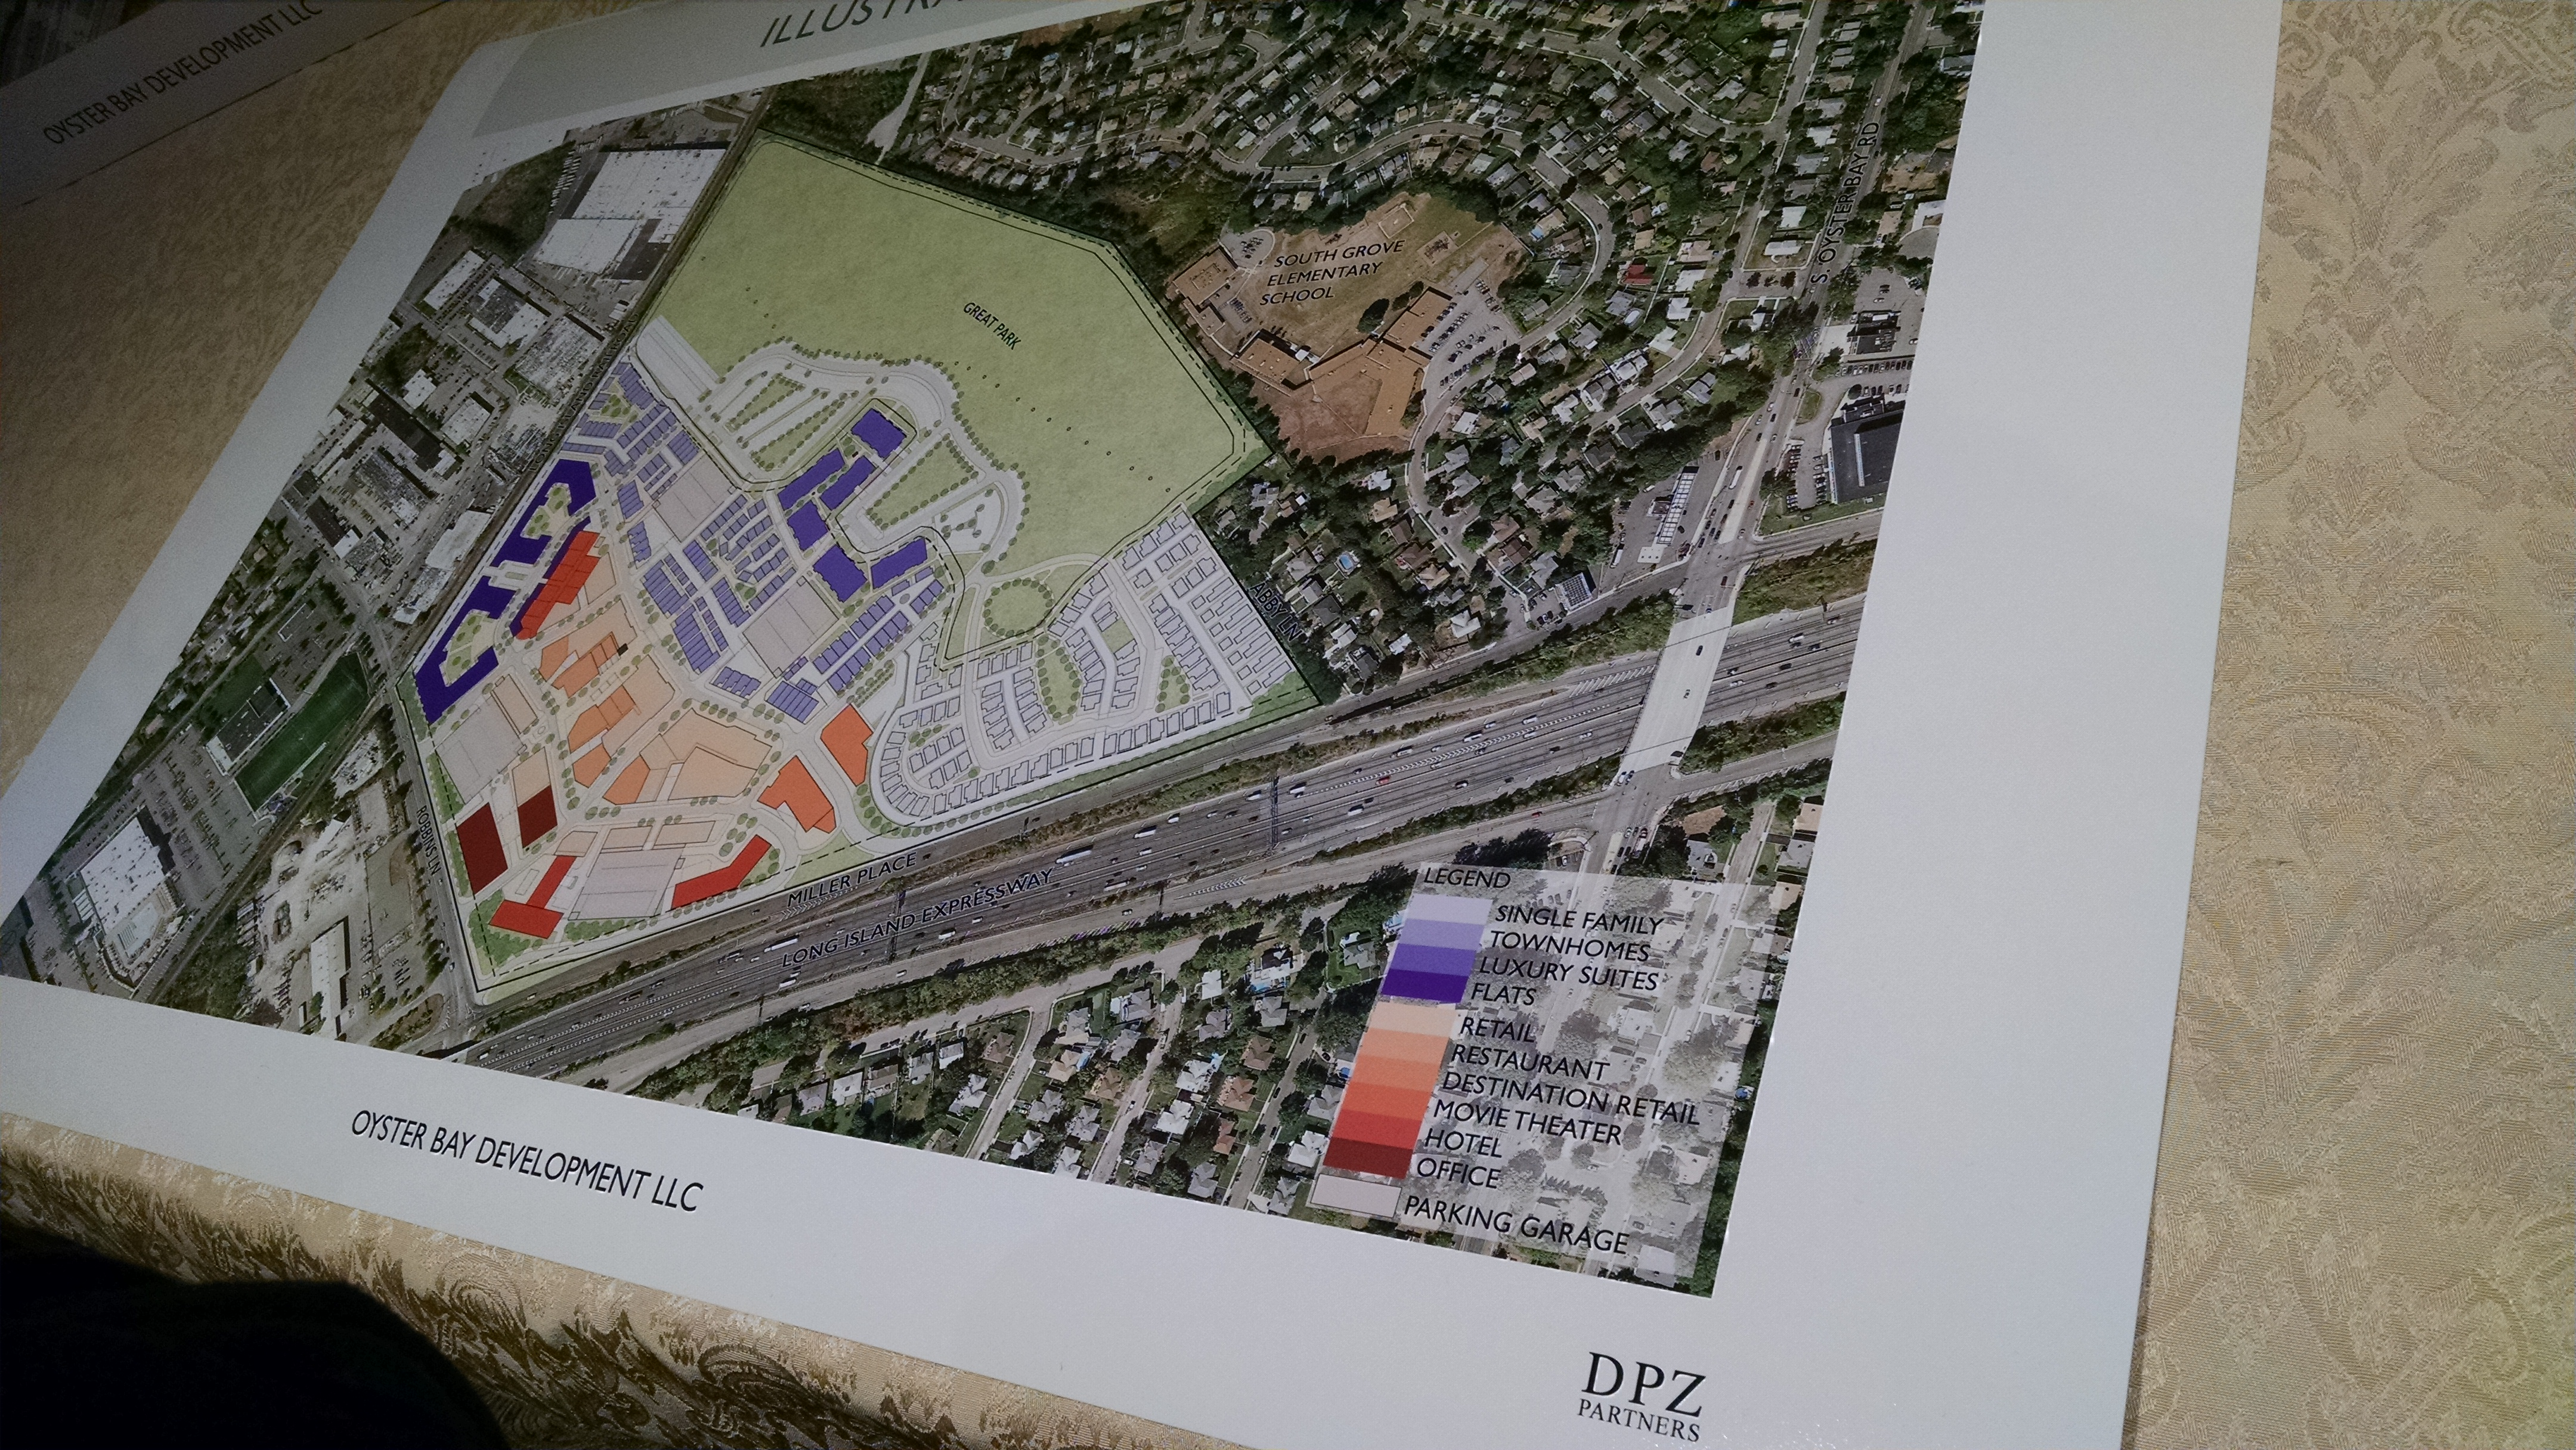 Syosset Park – Initial Reactions and Project Specs | The Foggiest Idea